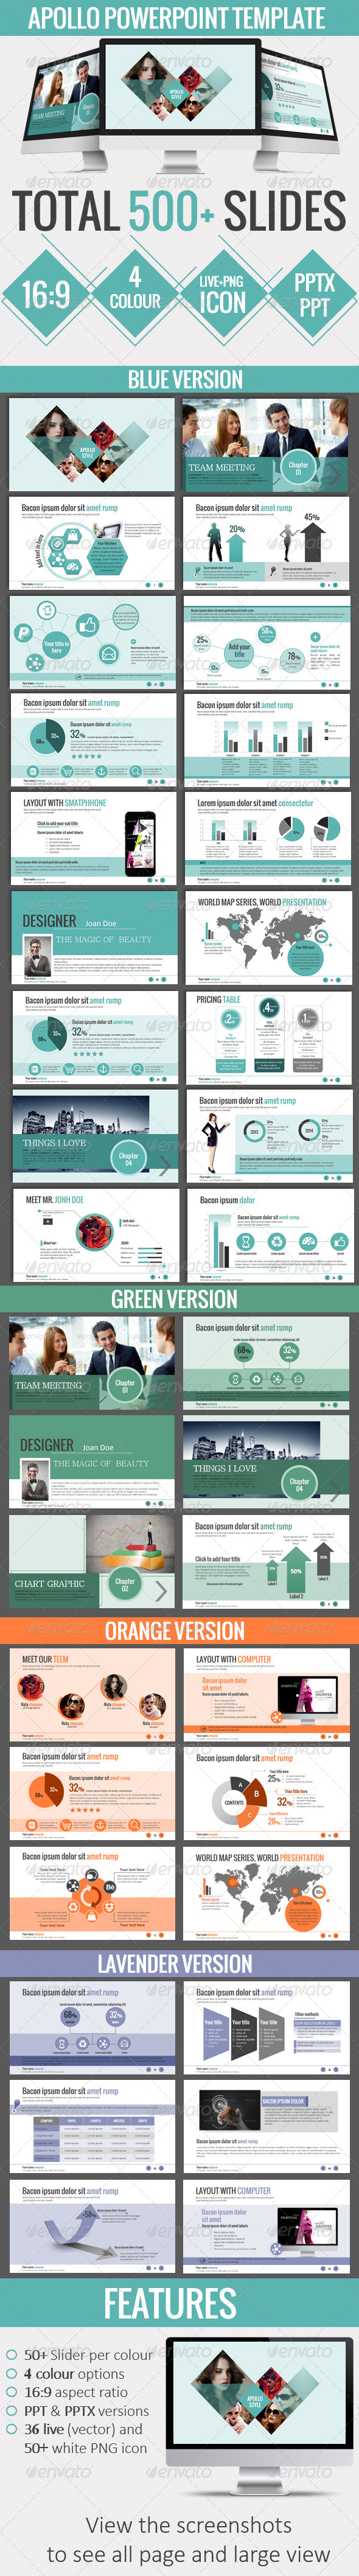 GraphicRiver APOLLO Powerpoint Template 6703834